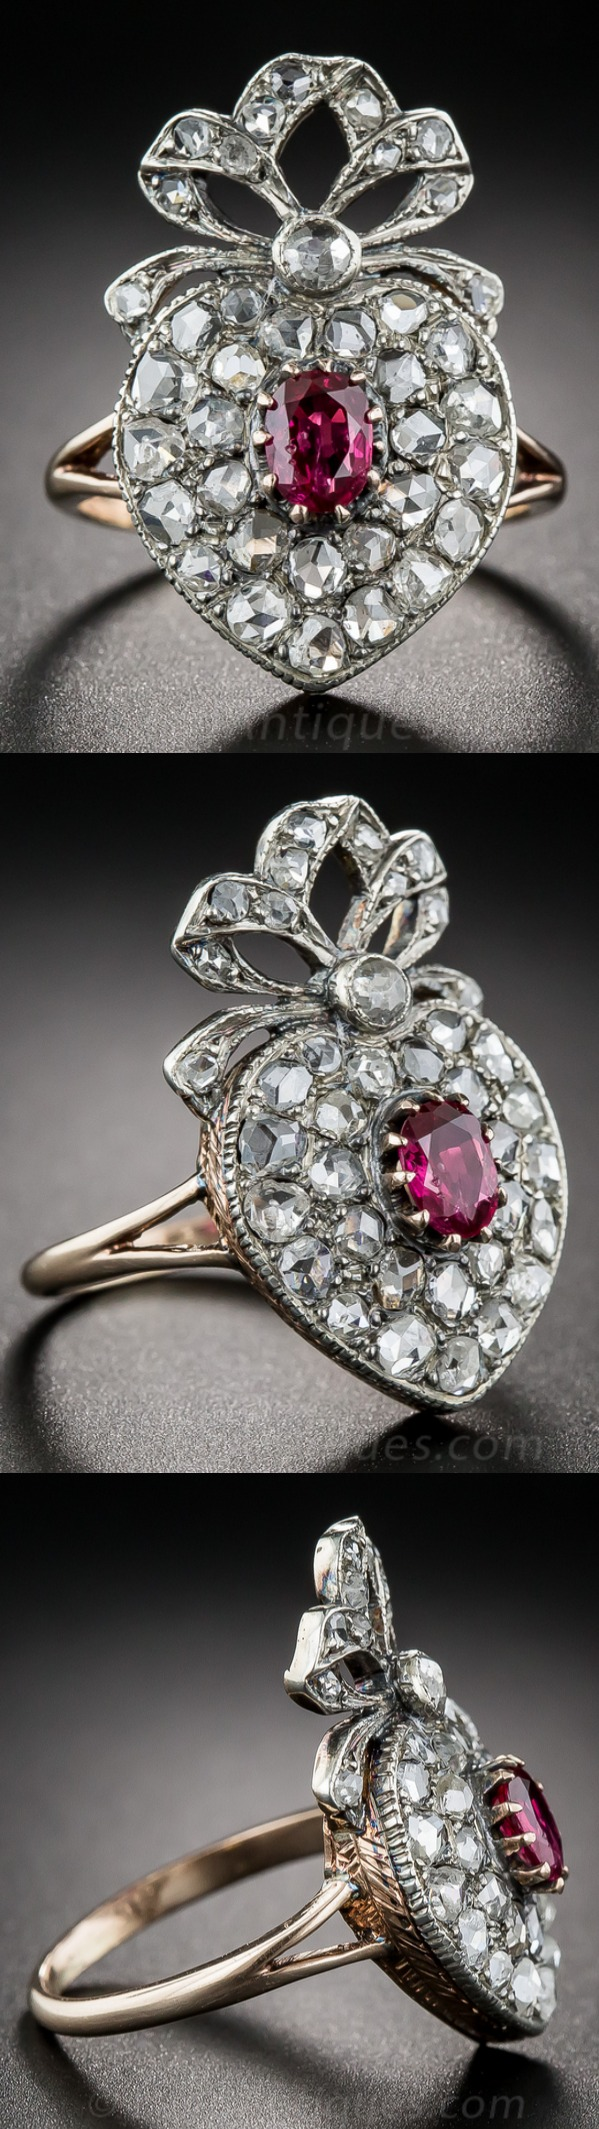 """Edwardian romanticism is in full bloom in this ravishing and regal, ruby and diamond ring - circa 1900. Measuring an impressive 1 inch minus (15/16""""), the glittering rose-cut diamond studded heart is hand fabricated in silver over 9ct. rose gold (hence of British origin), and is centered with a rich, red oval faceted ruby. A classic diamond bow crowns this rare, wonderful and very wearable treasure."""